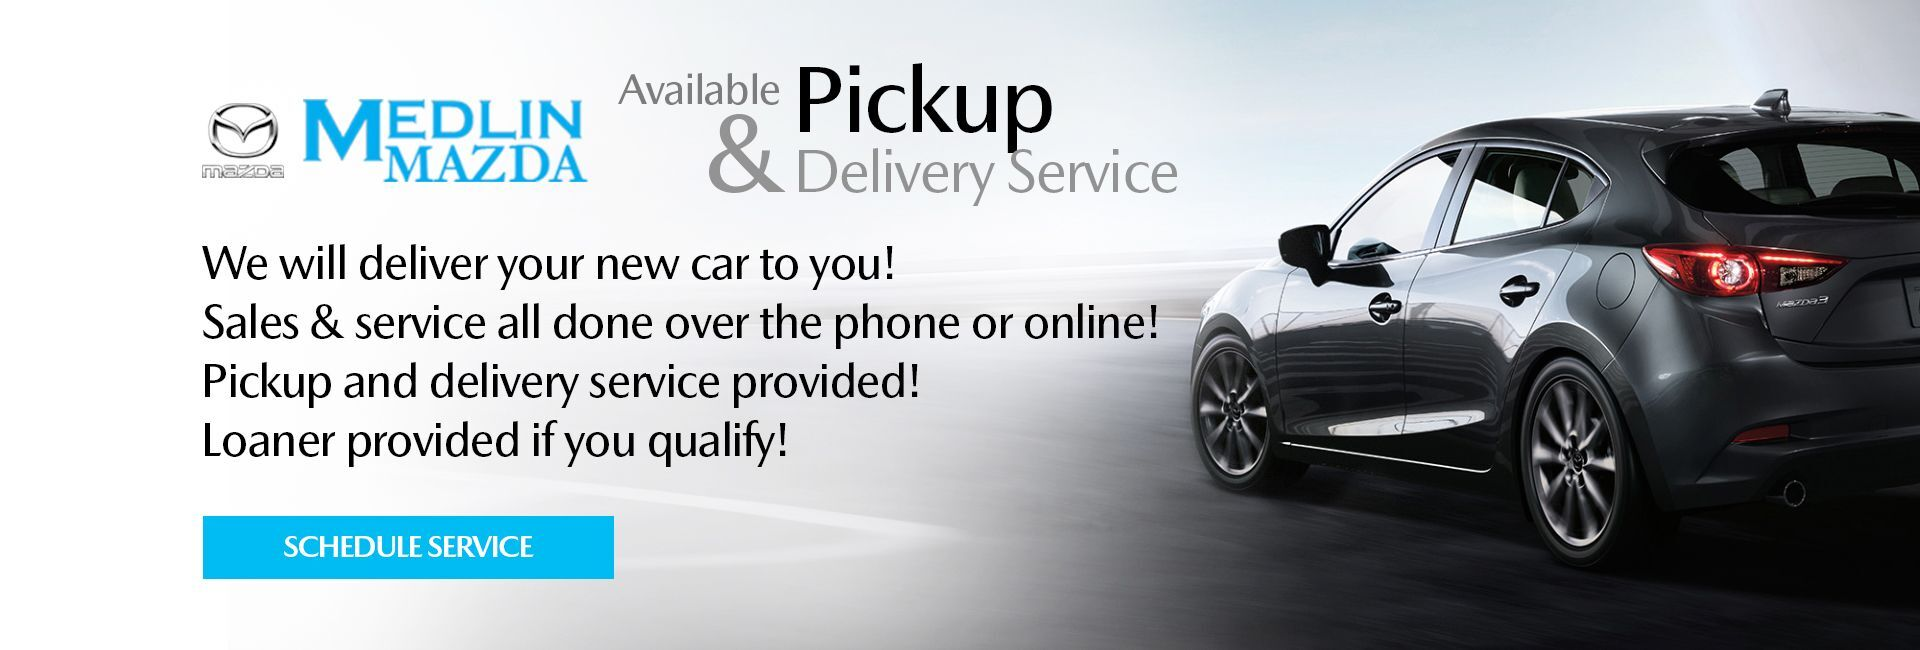 "banner image with text ""available pickup & delivery service"" next to mazda logo and vehicle"